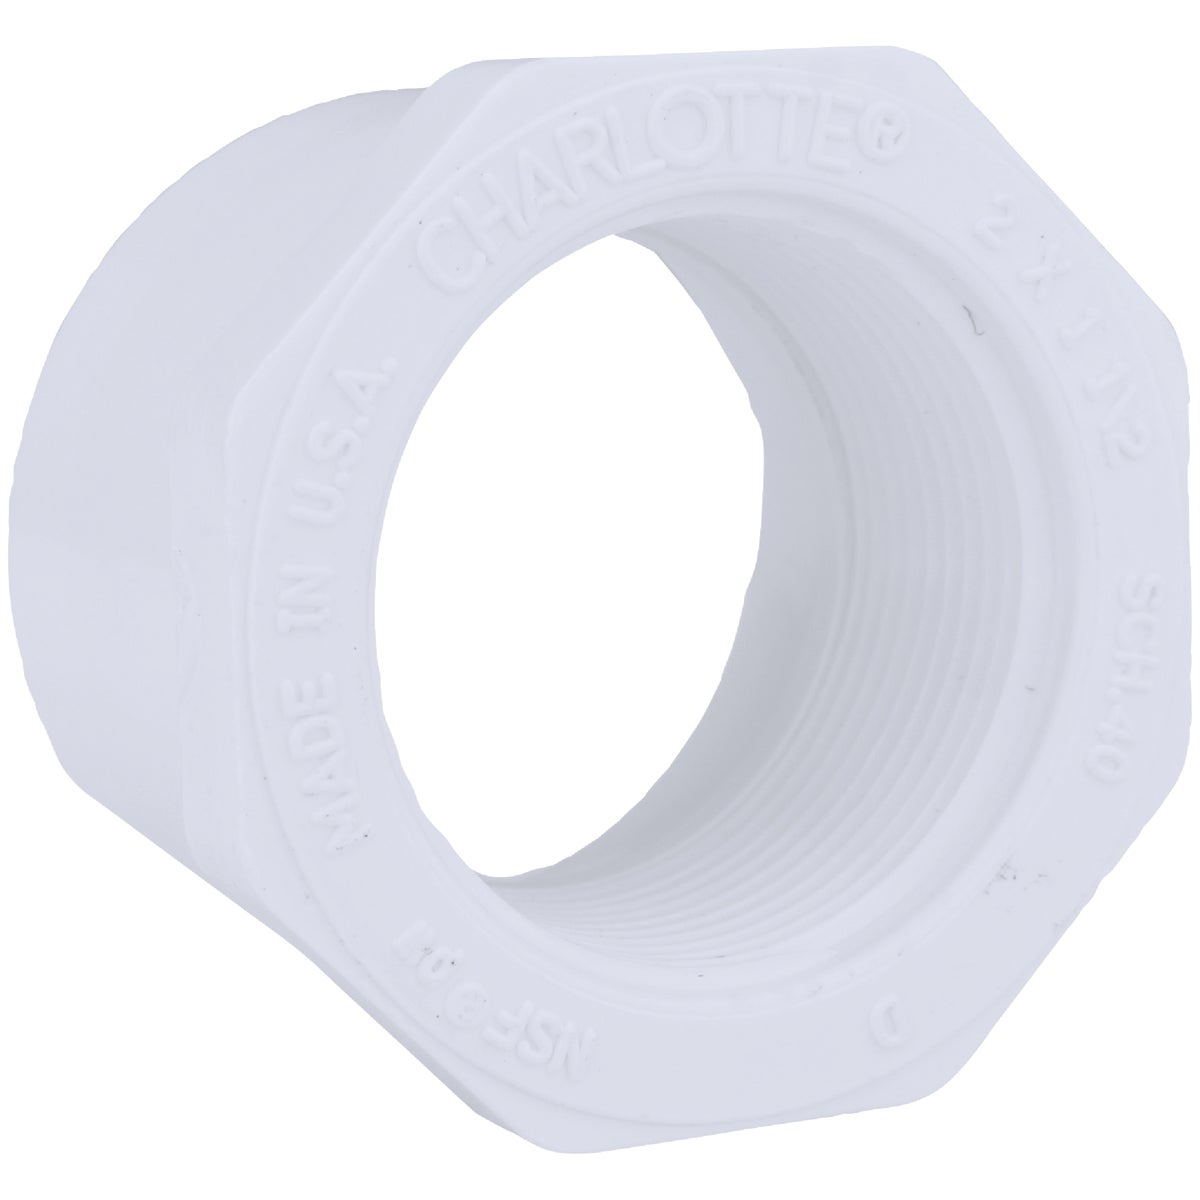 2X1-1/2 SPXFIP BUSHING - 34221 by Genova Inc